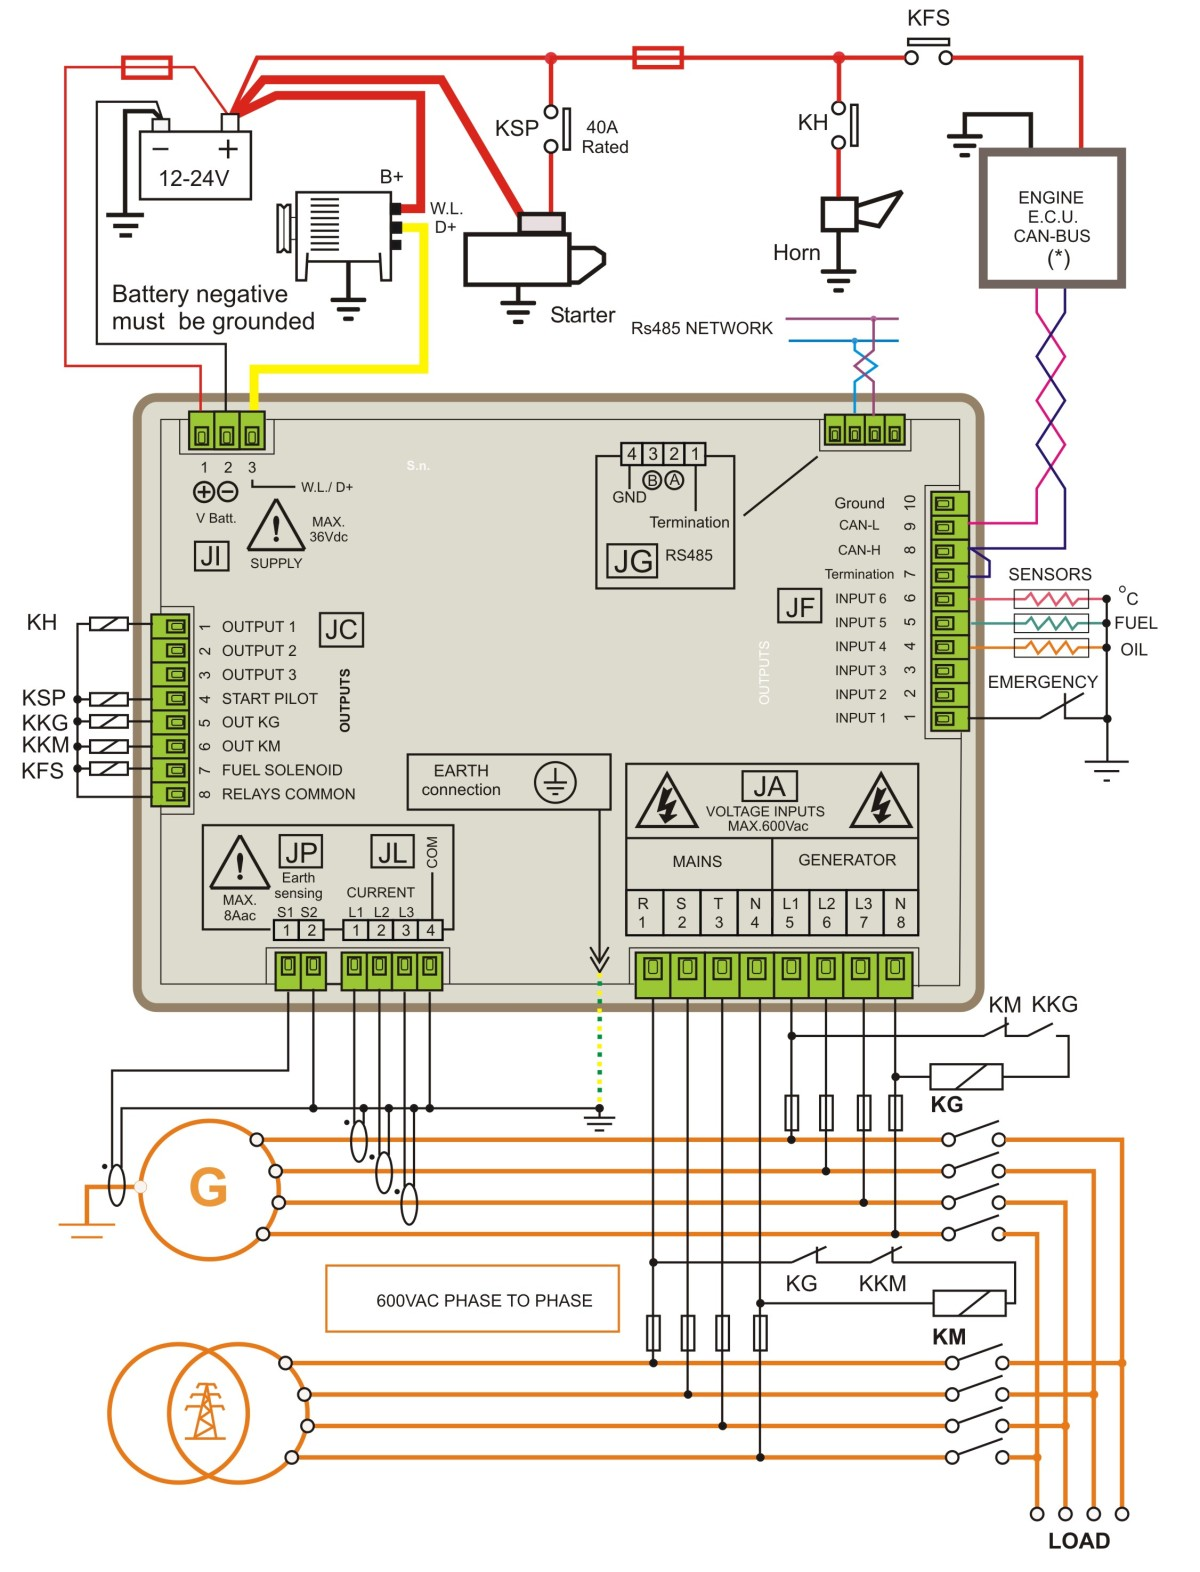 Diesel Generator Control Panel Wiring Diagram BeK3 e1450881313642 wiring diagram generator readingrat net newage stamford generator wiring diagram at crackthecode.co